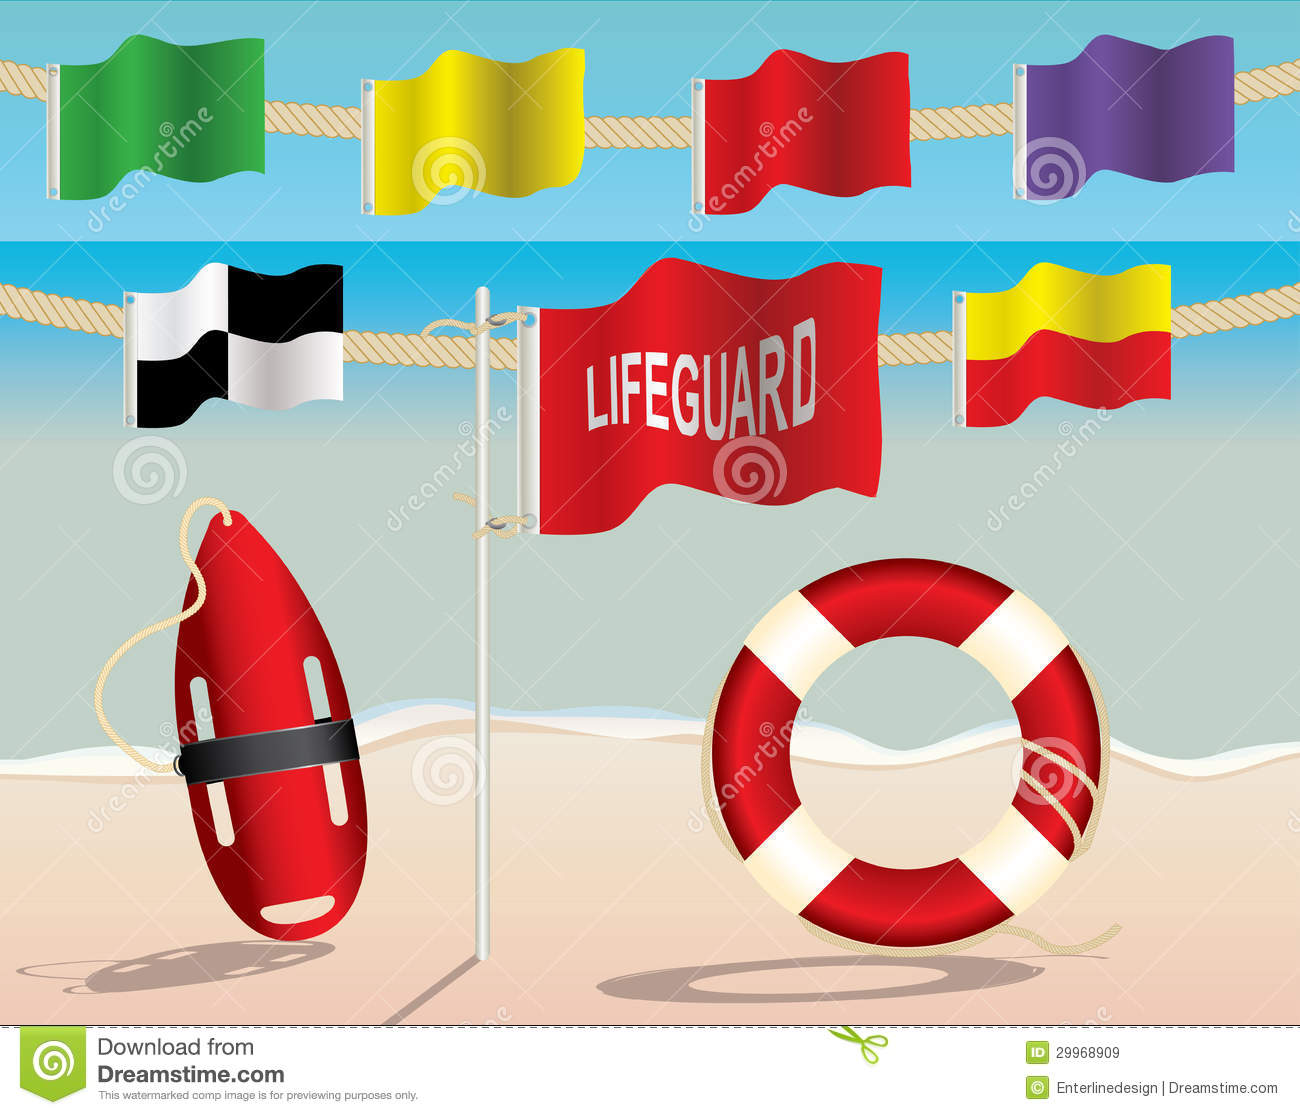 Lifeguard Equipment And Warning Flags On The Beach Royalty